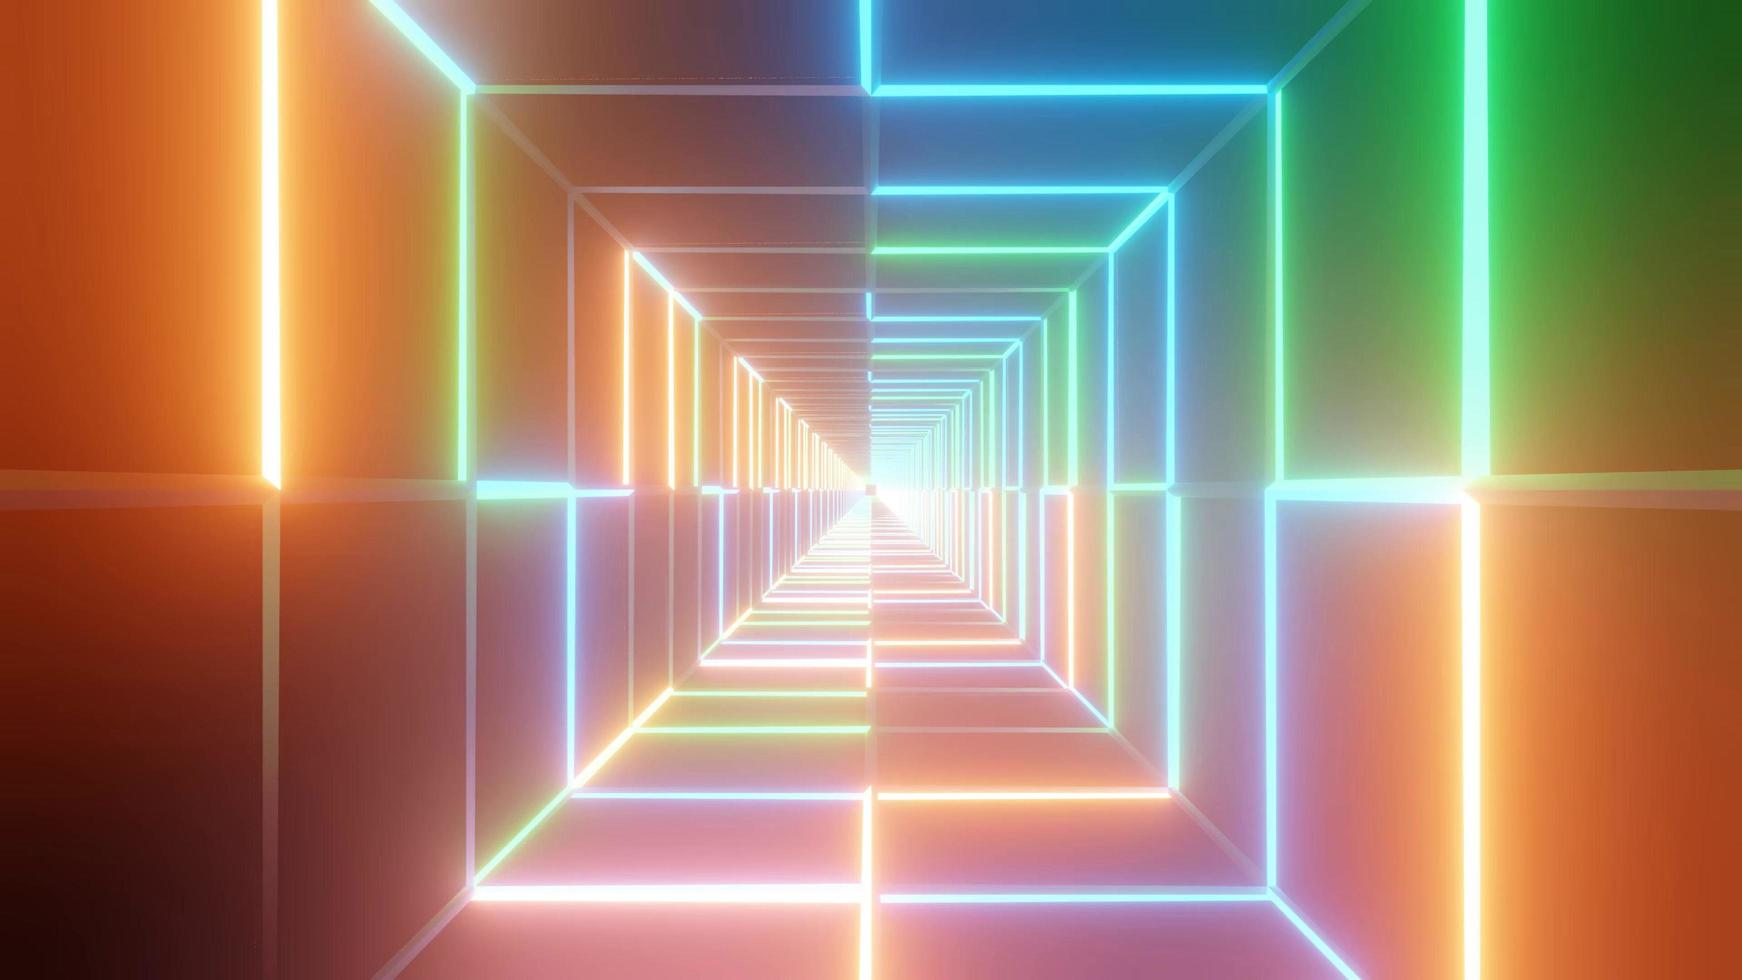 Spectral wall neon space cube, 3D illustration background photo